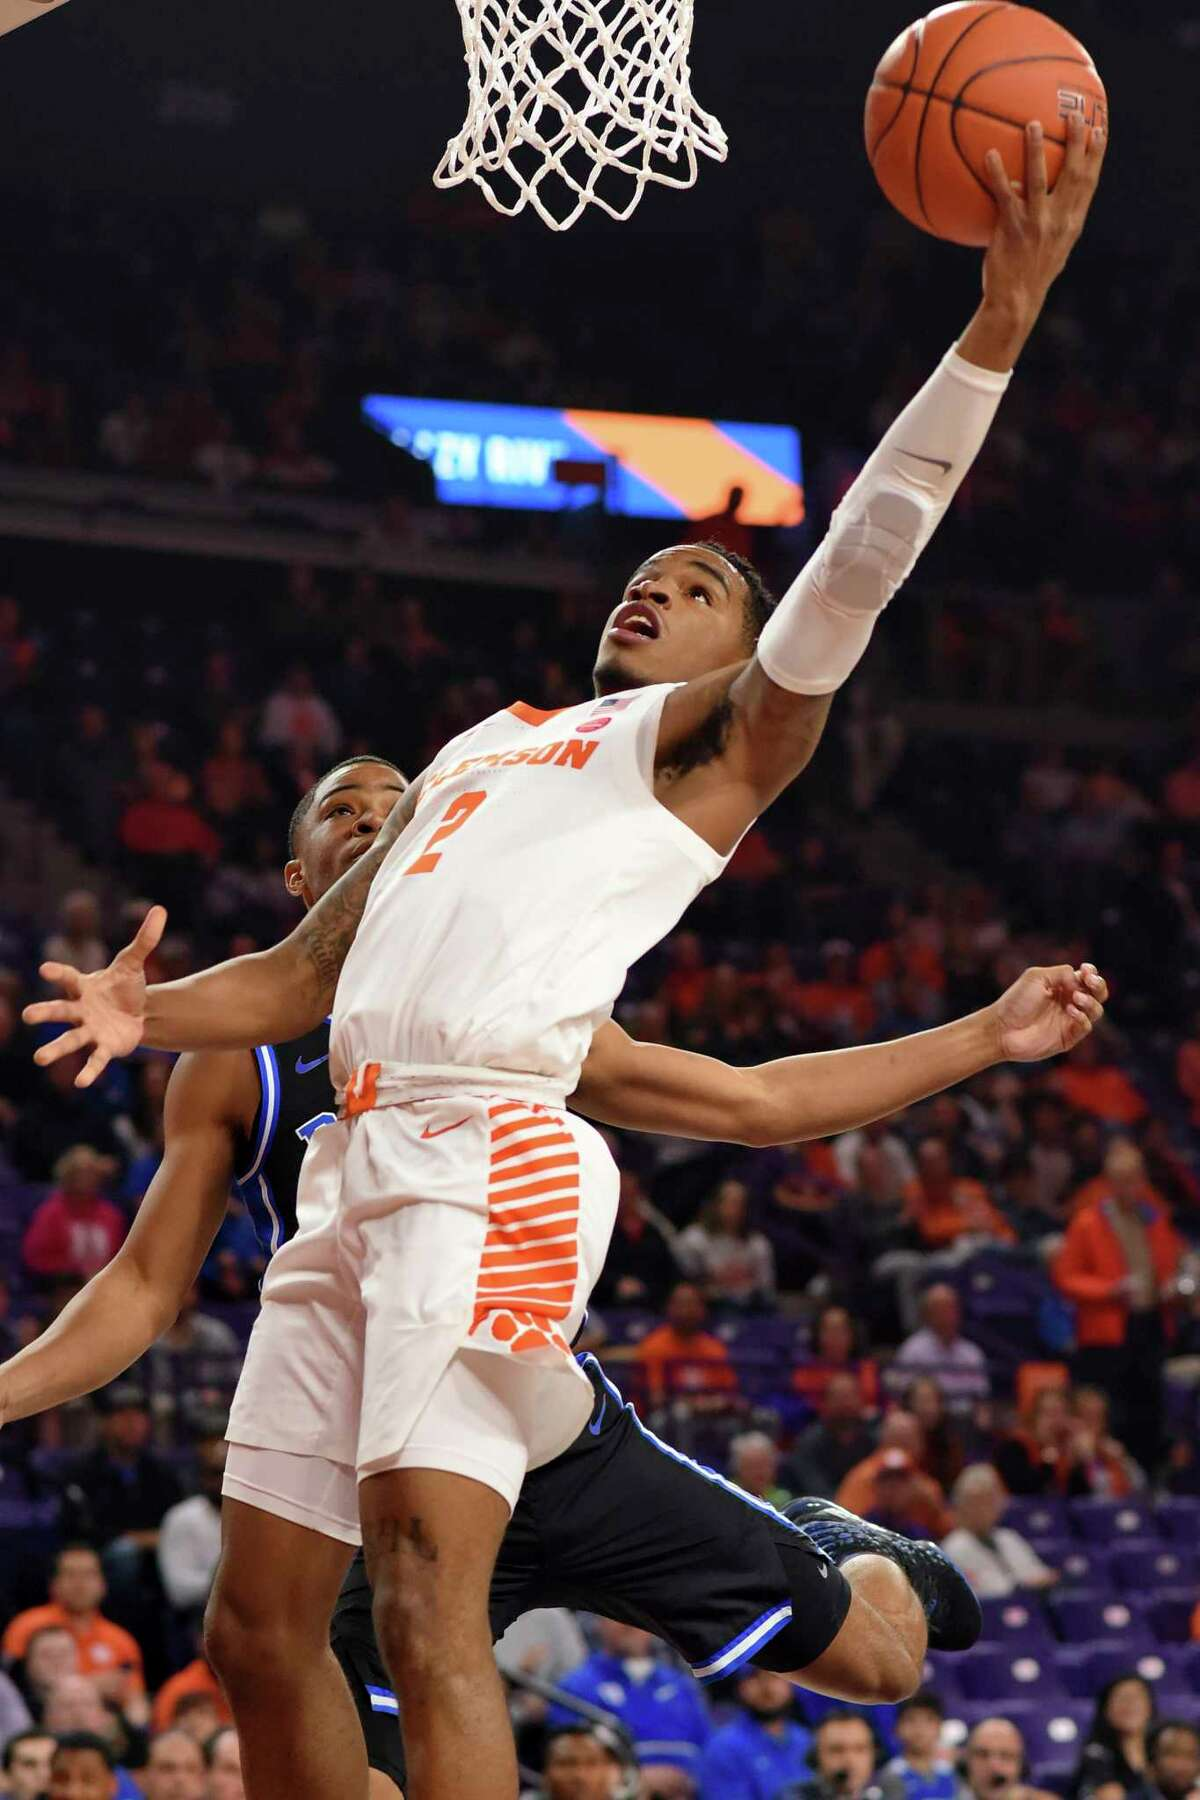 Clemson's Al-Amir Dawes, front, shoots while defended by Duke's Cassius Stanley during the first half of an NCAA college basketball game against Duke Tuesday, Jan. 14, 2020, in Clemson, S.C. (AP Photo/Richard Shiro)